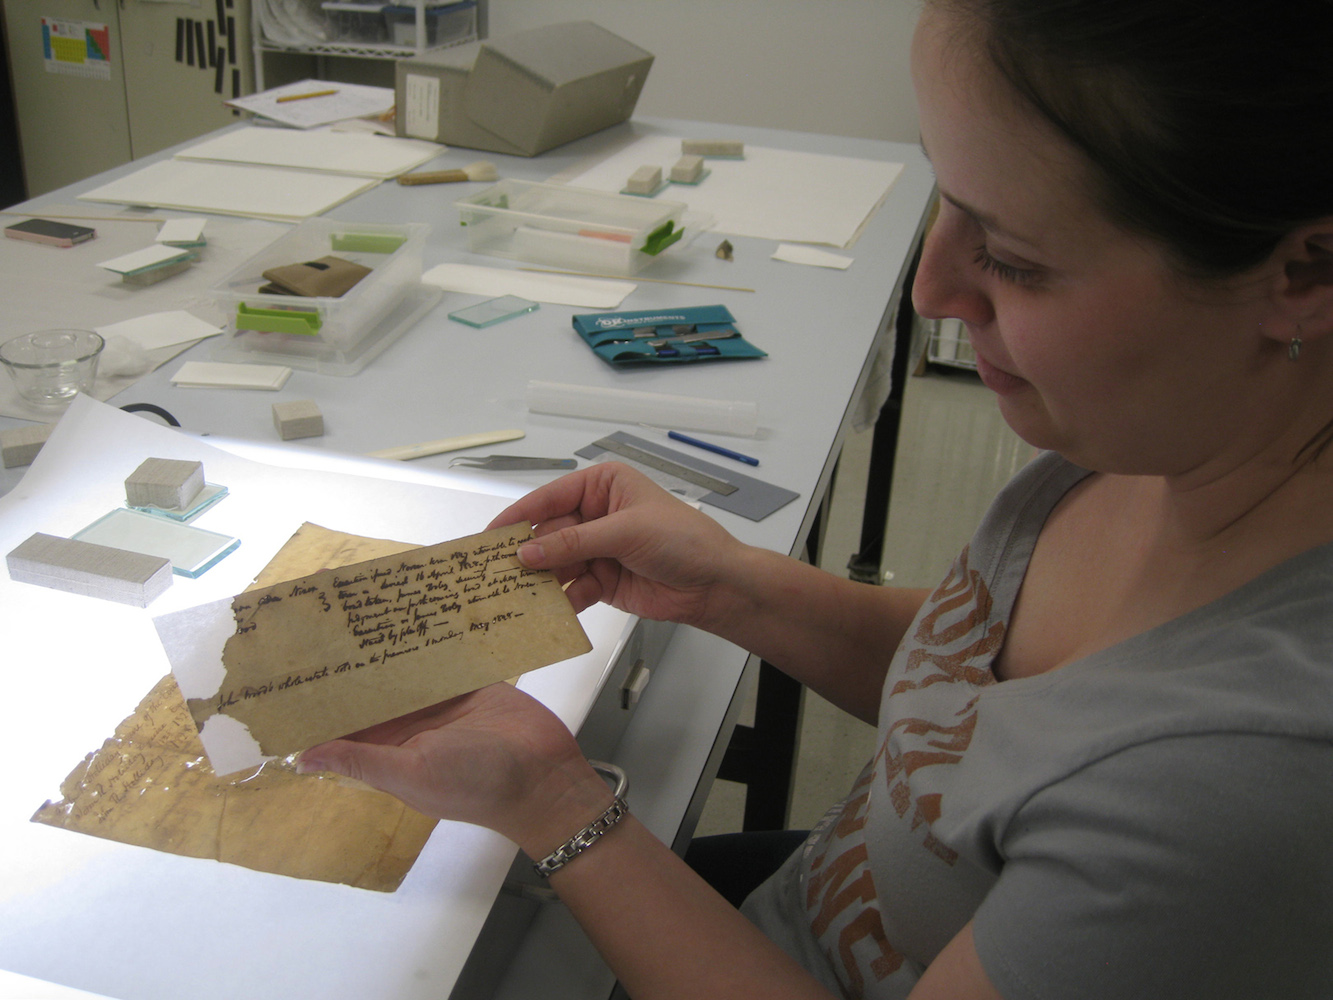 An archivist works at preserving an old text.